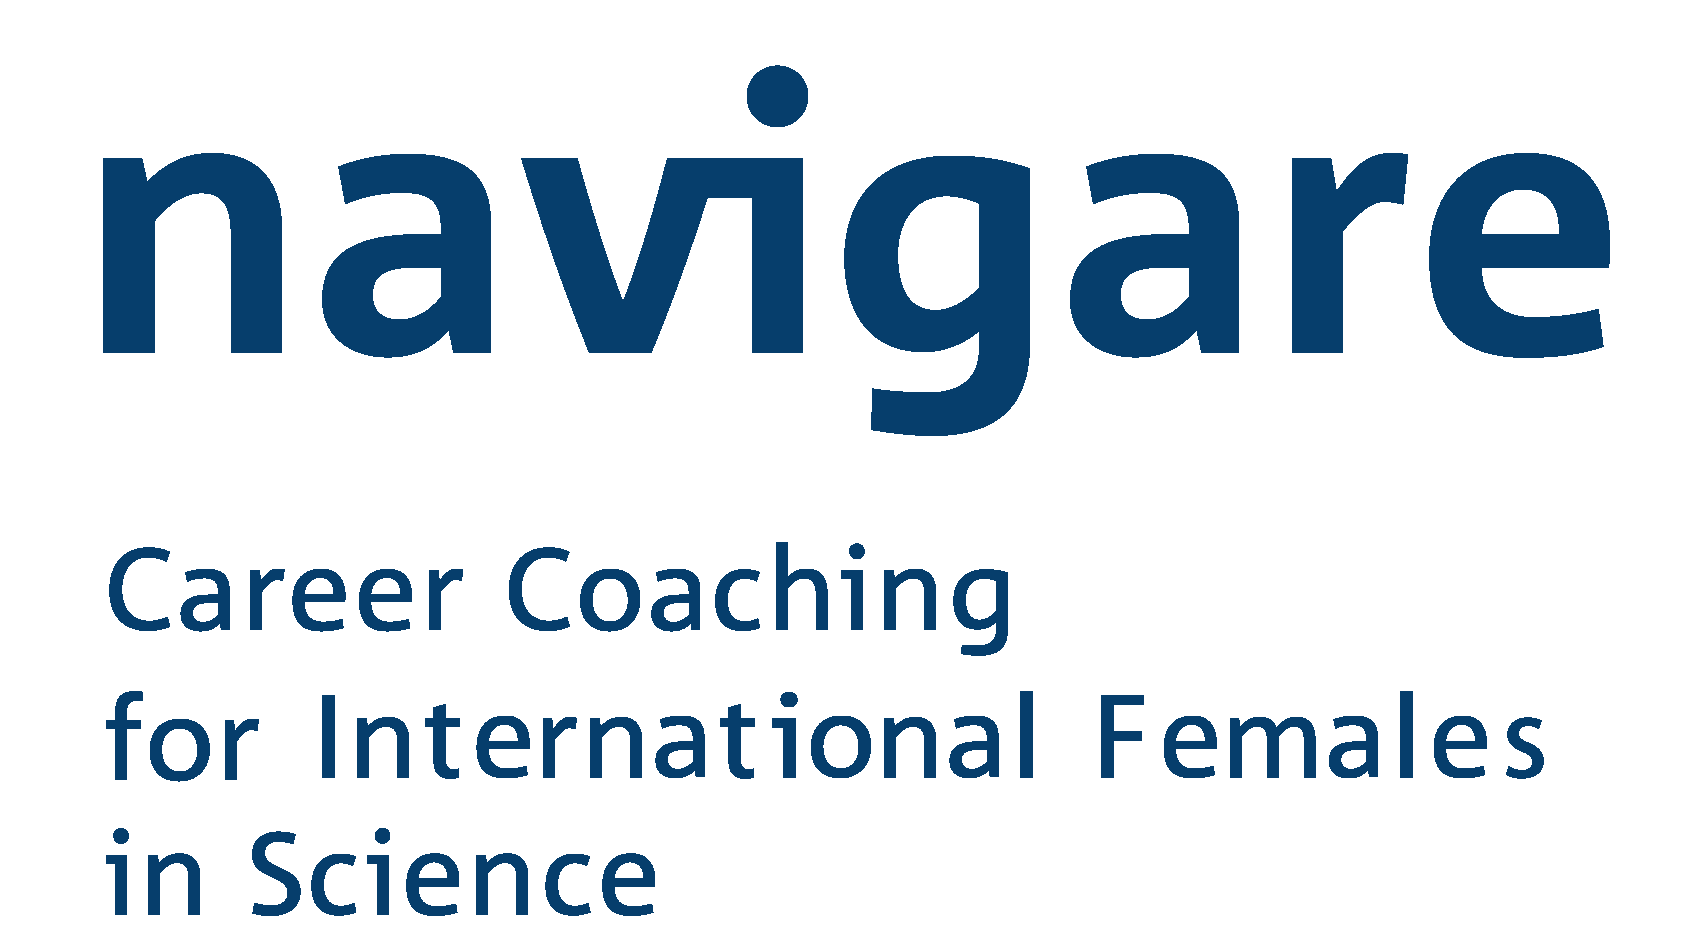 Logo navigare: Career Coaching for International Females in Science